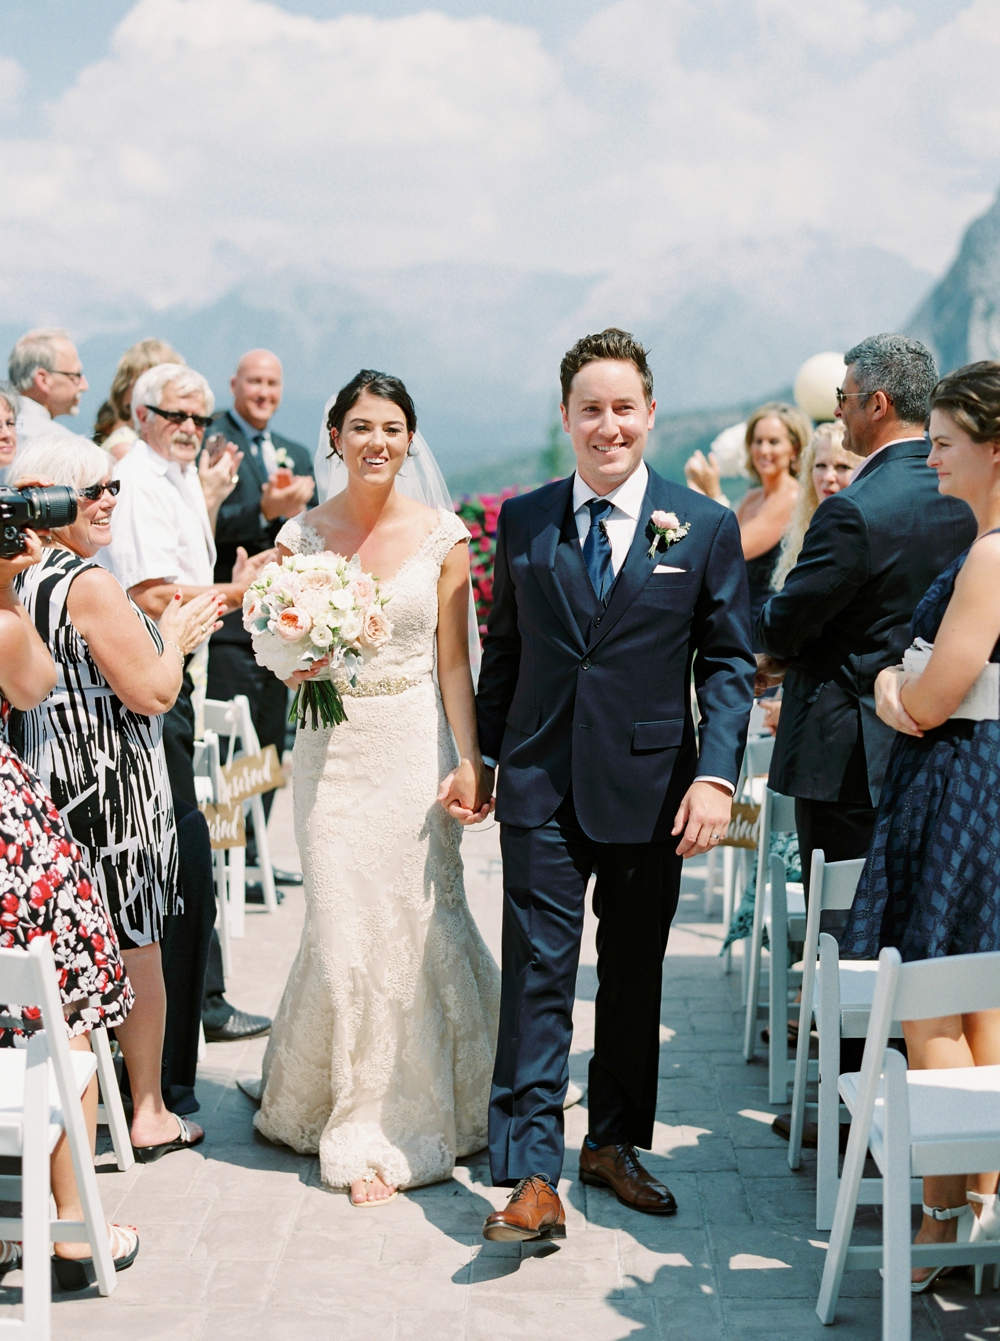 outdoor ceremony | Banff springs wedding photographers | fairmont banff rocky mountain wedding | Justine Milton fine art film Photography